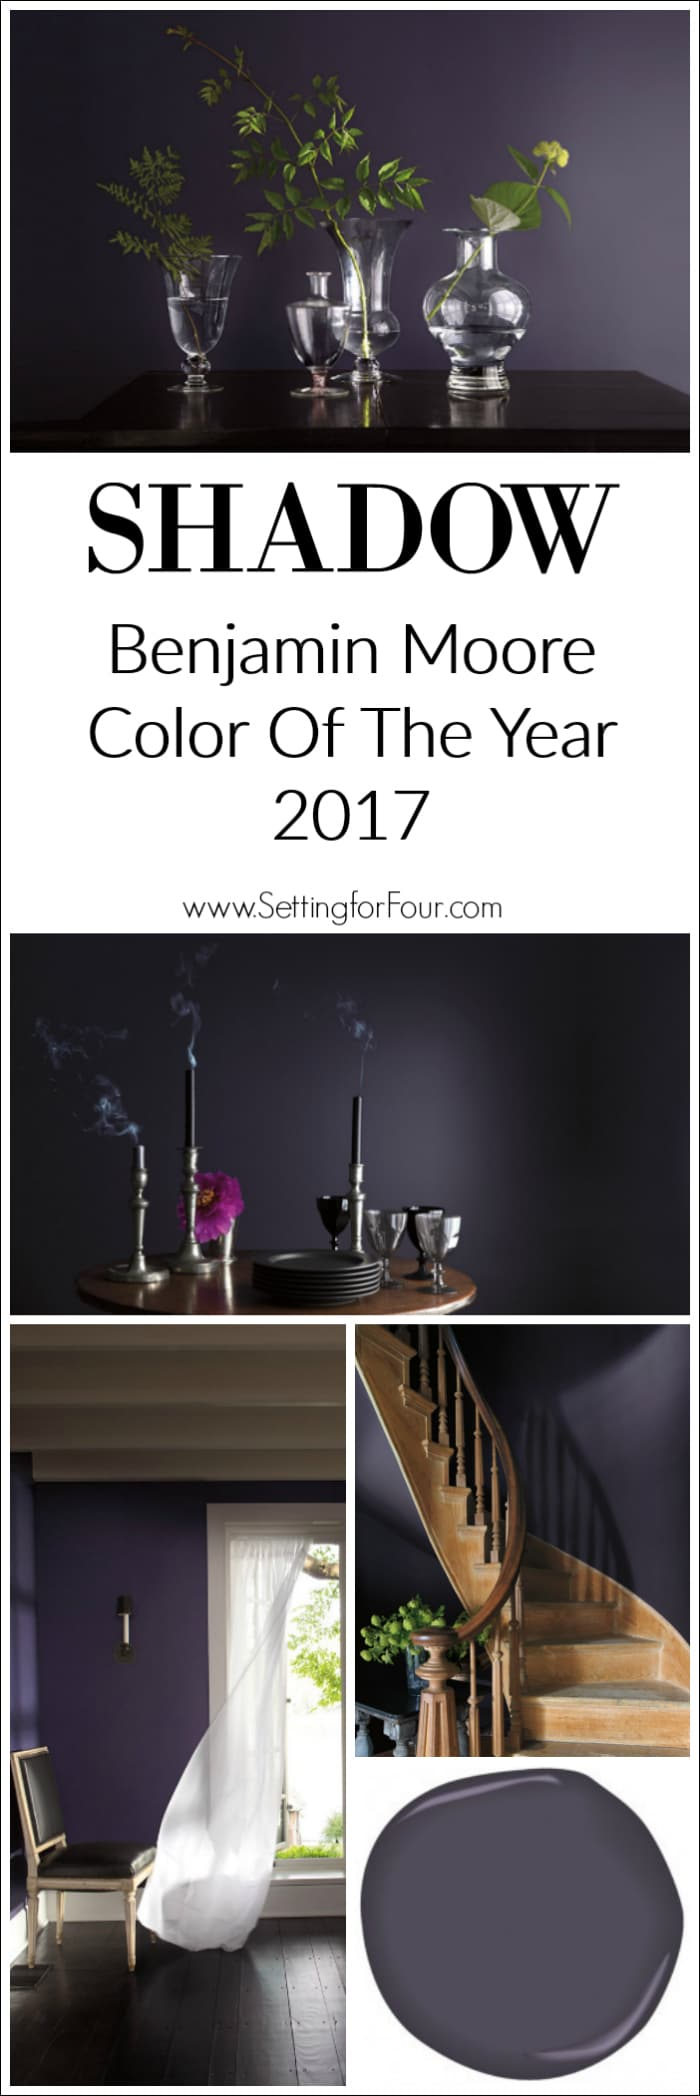 For your home: Looking for a paint color to paint your next room? See why I love Shadow BM 2117-30: Benjamin Moore's Color of the Year 2017 and how it looks in real rooms!